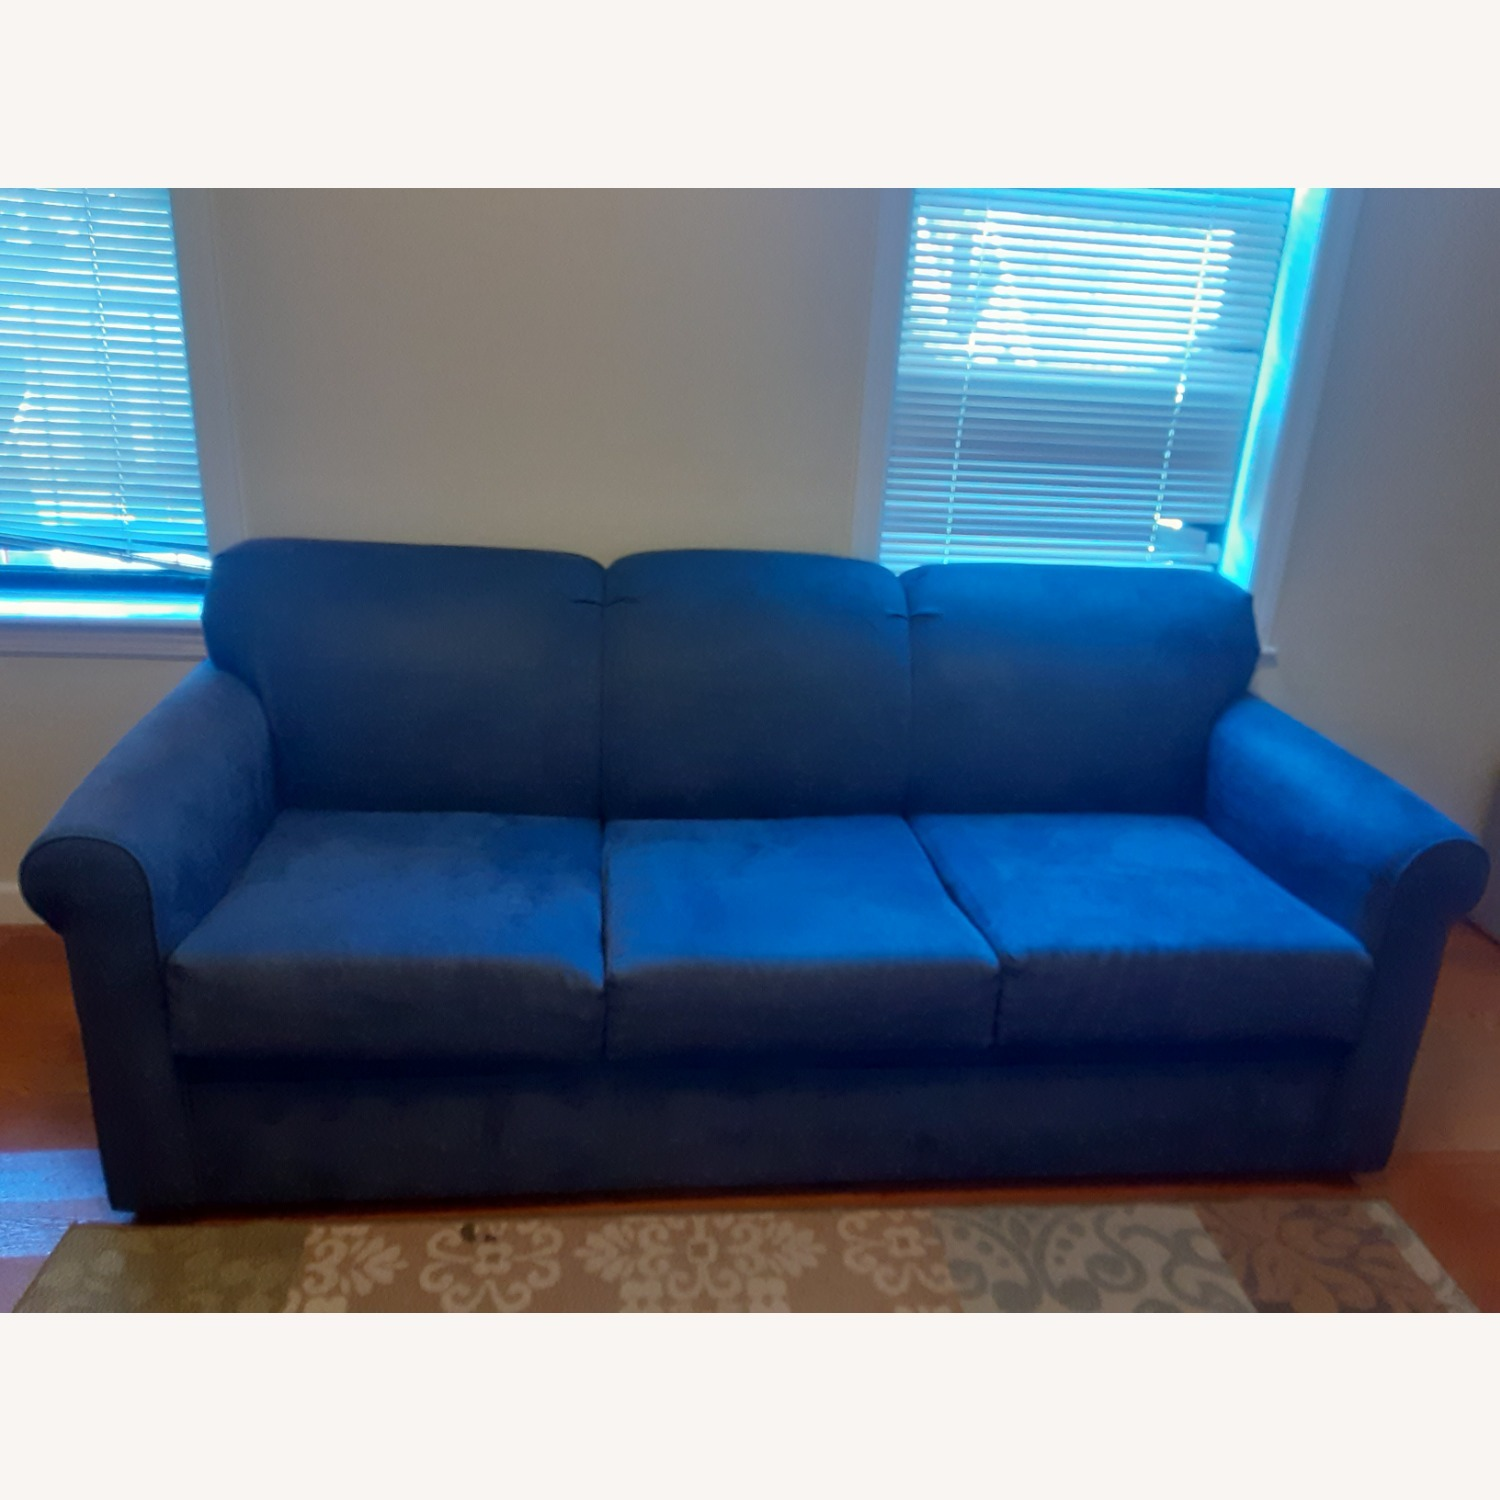 Queen Size Sofa Bed - image-1